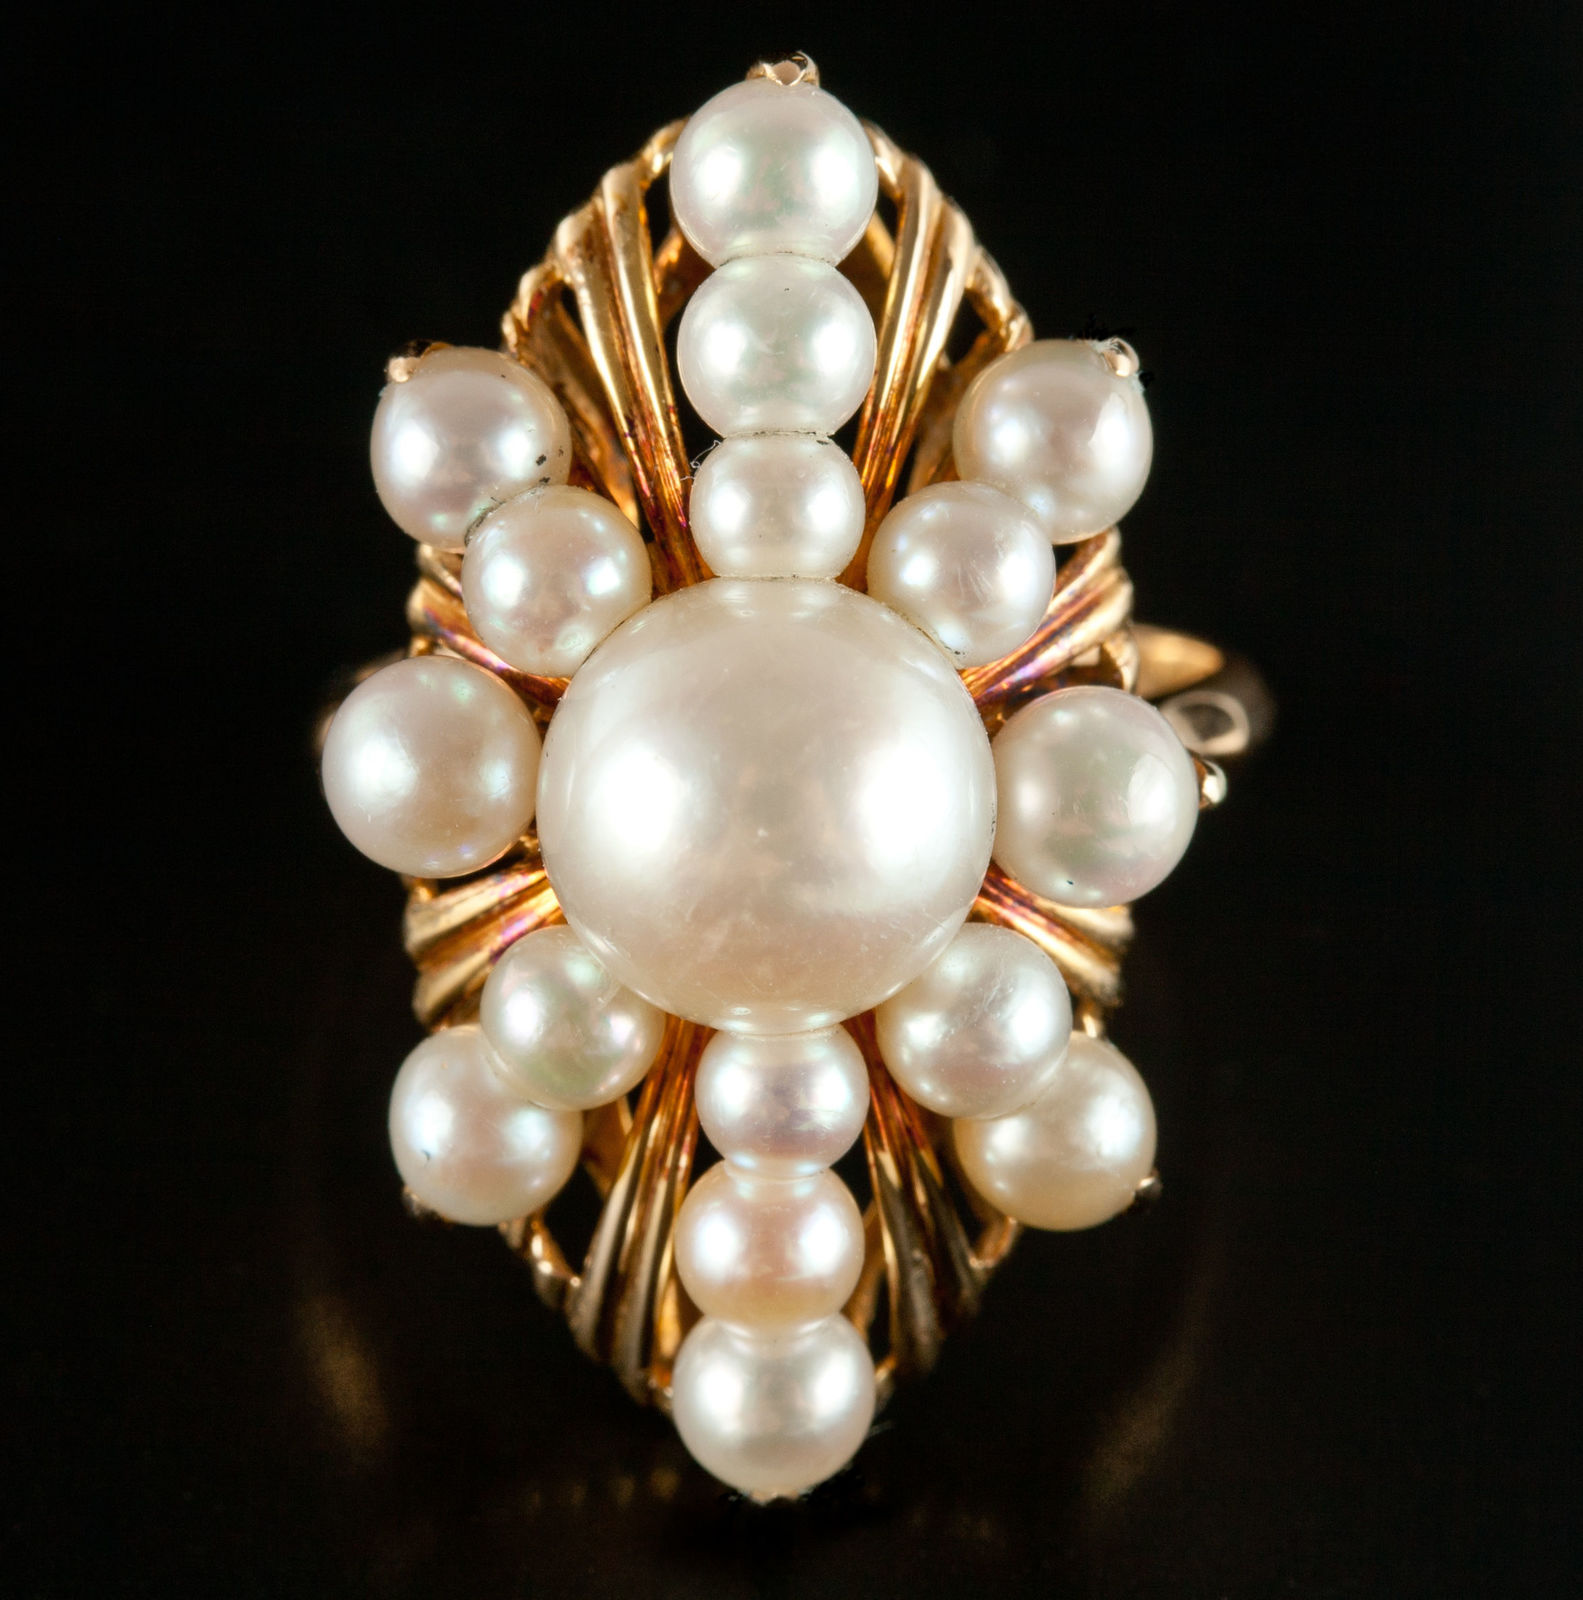 Primary image for Vintage 1960's 18k Yellow Gold Round Cultured Pearl Cocktail Ring 6.2g Size 5.25